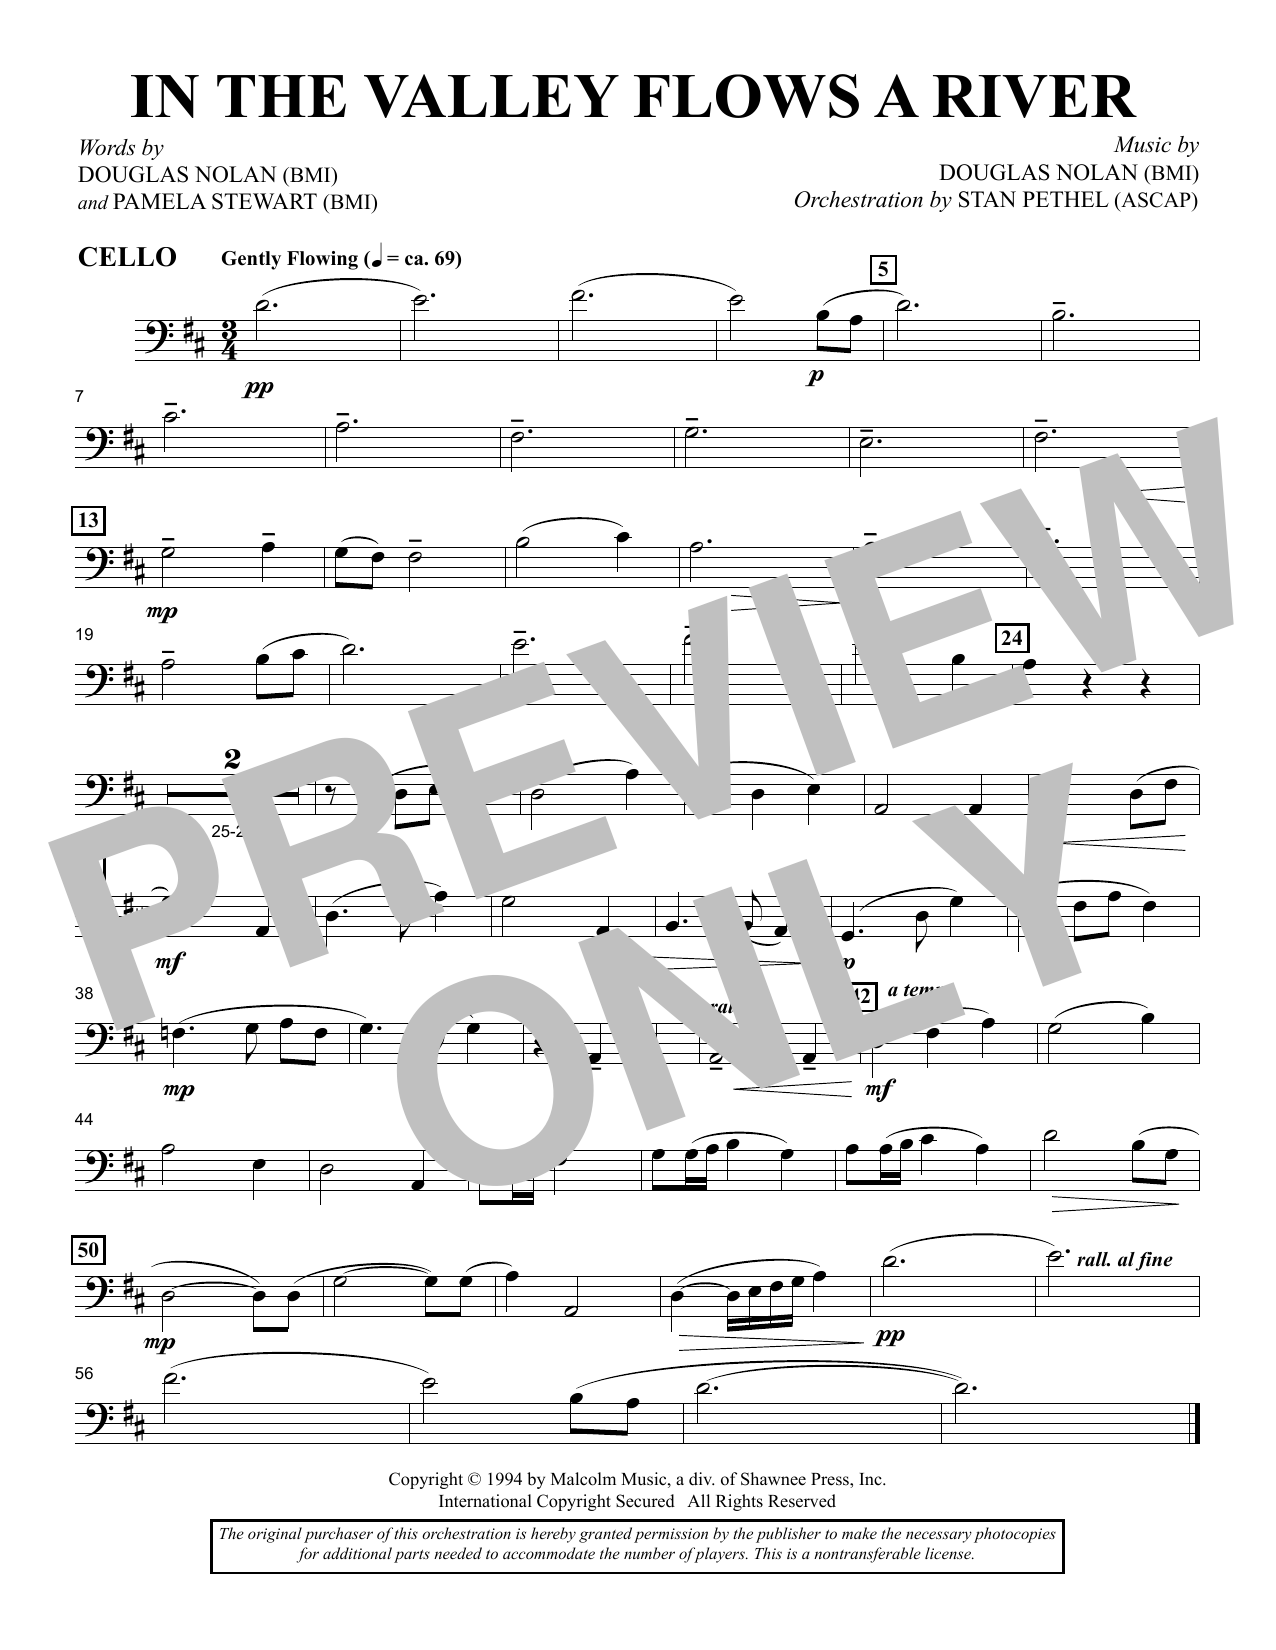 In the Valley Flows a River - Cello sheet music